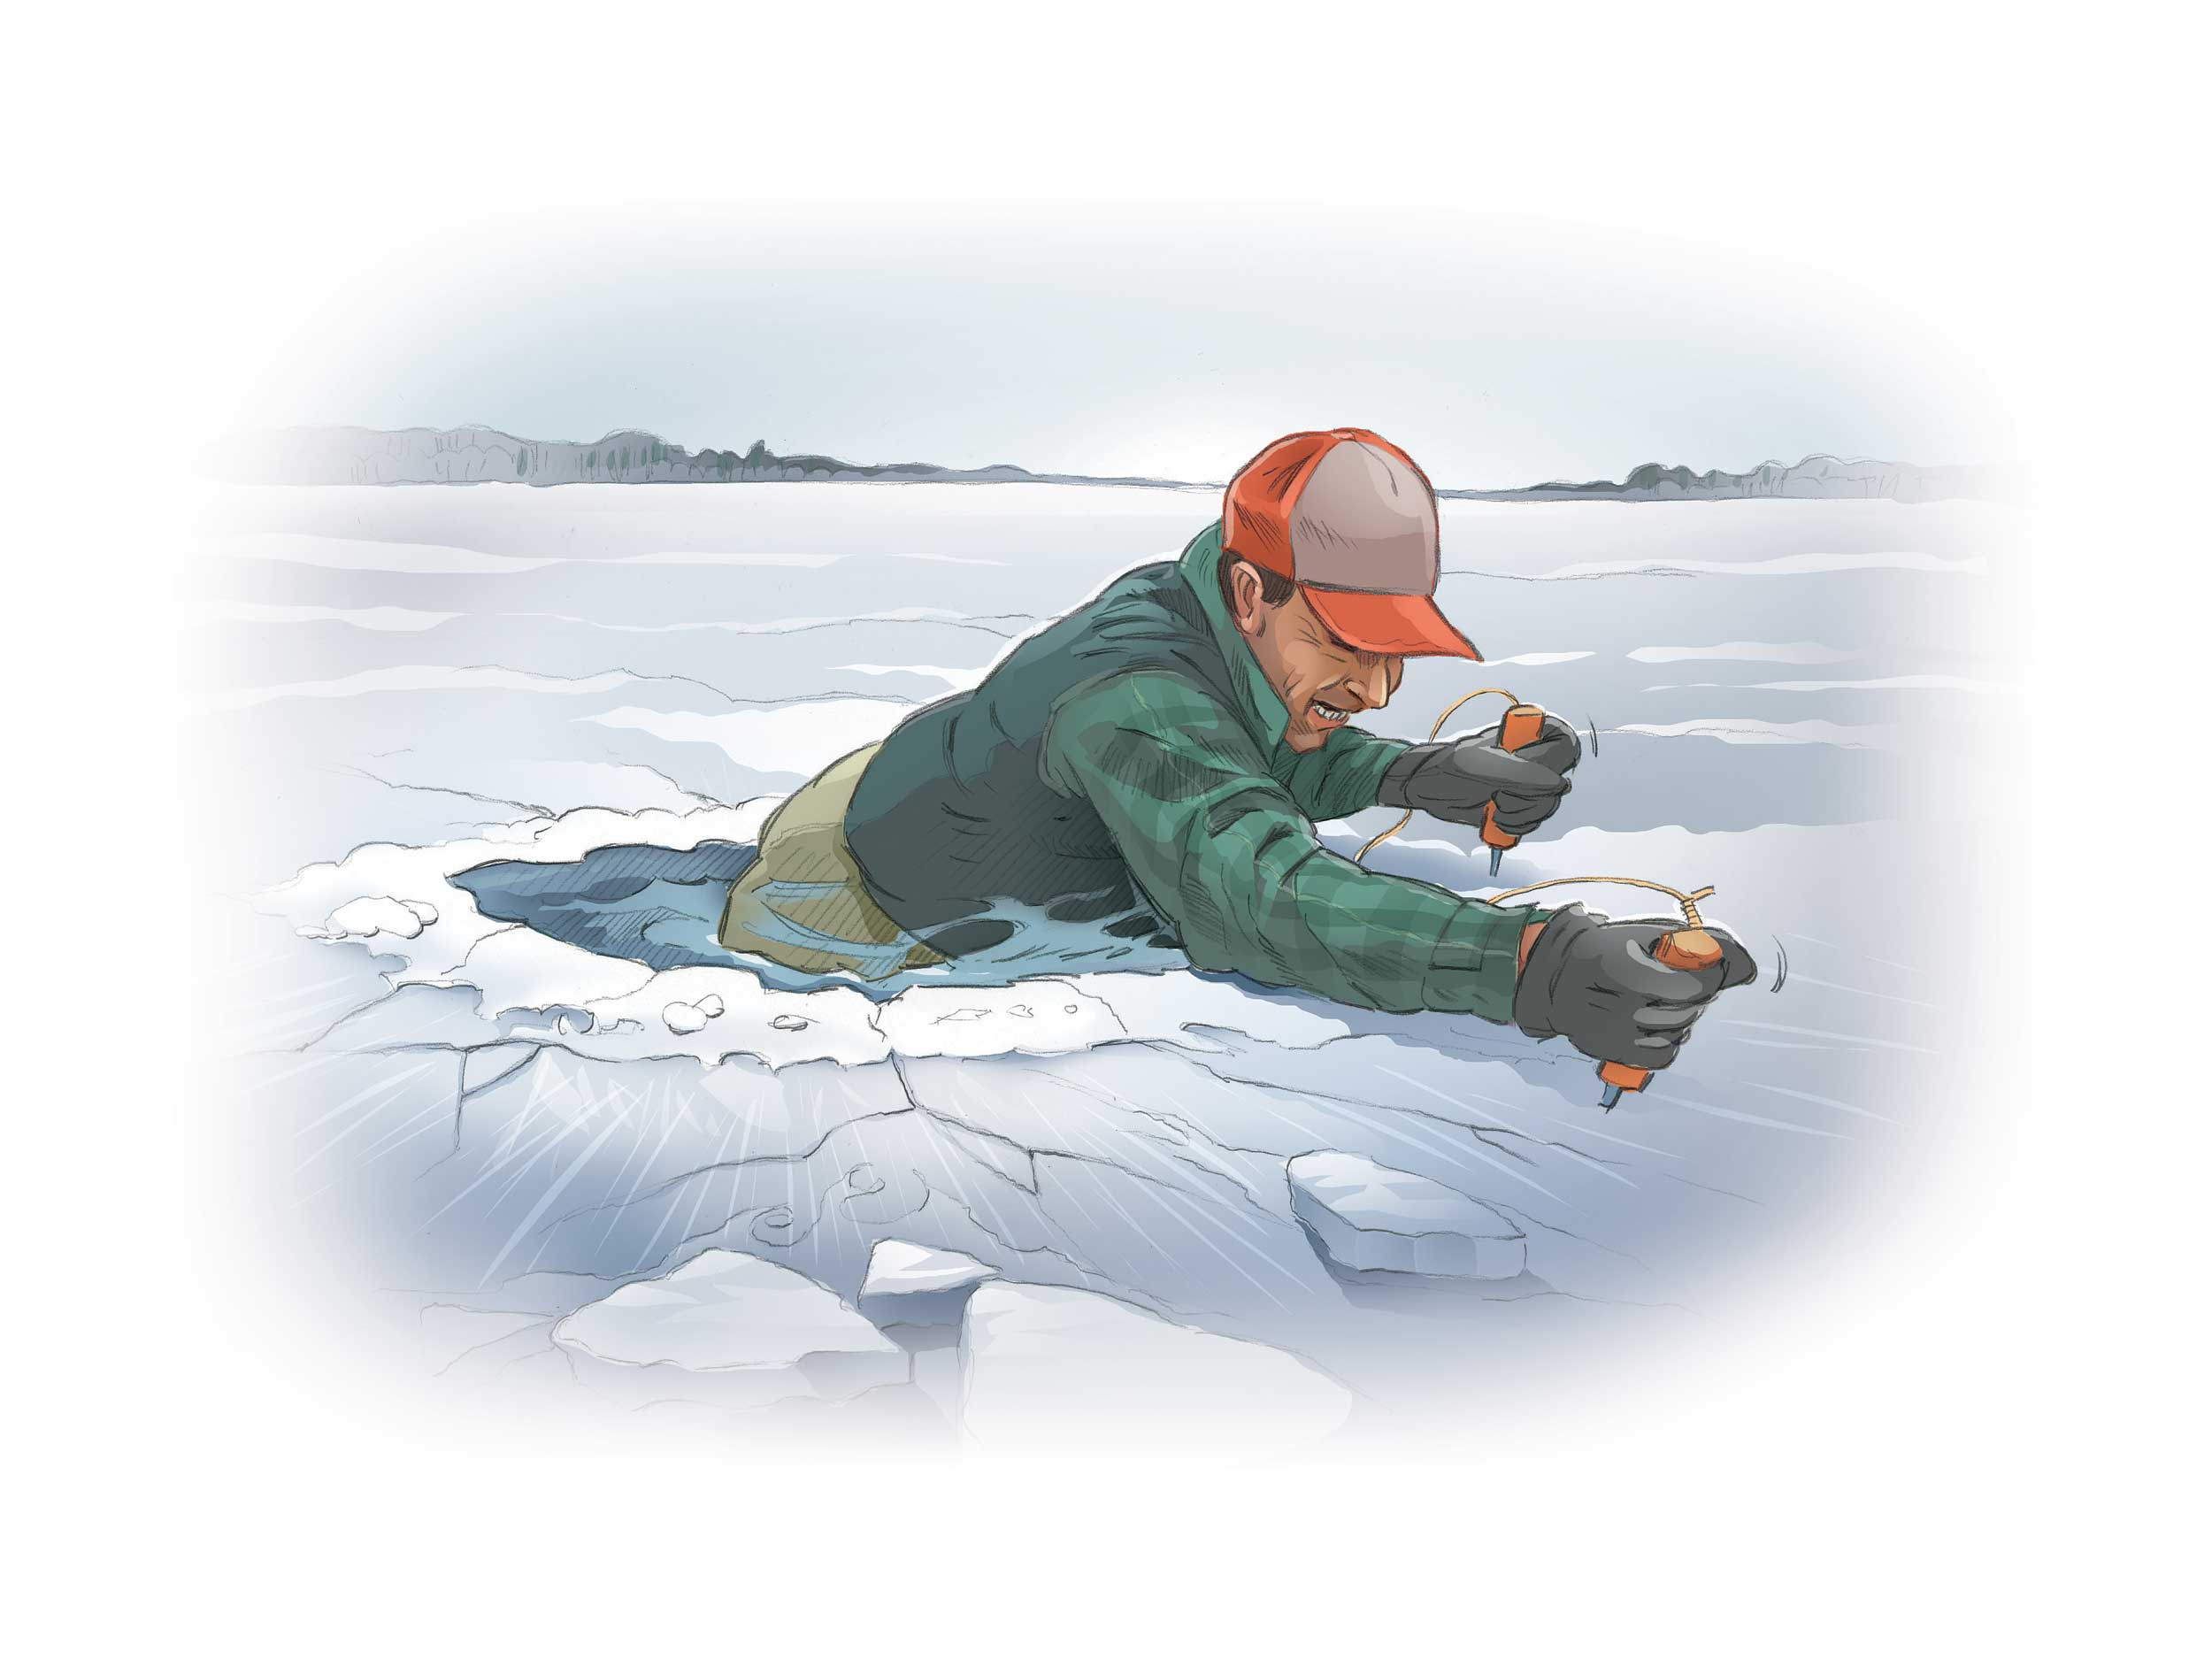 The key to surviving a fall through the ice is preparation. A pair of ice grippers could save your life. Illustration By Mike Del Rizzo.